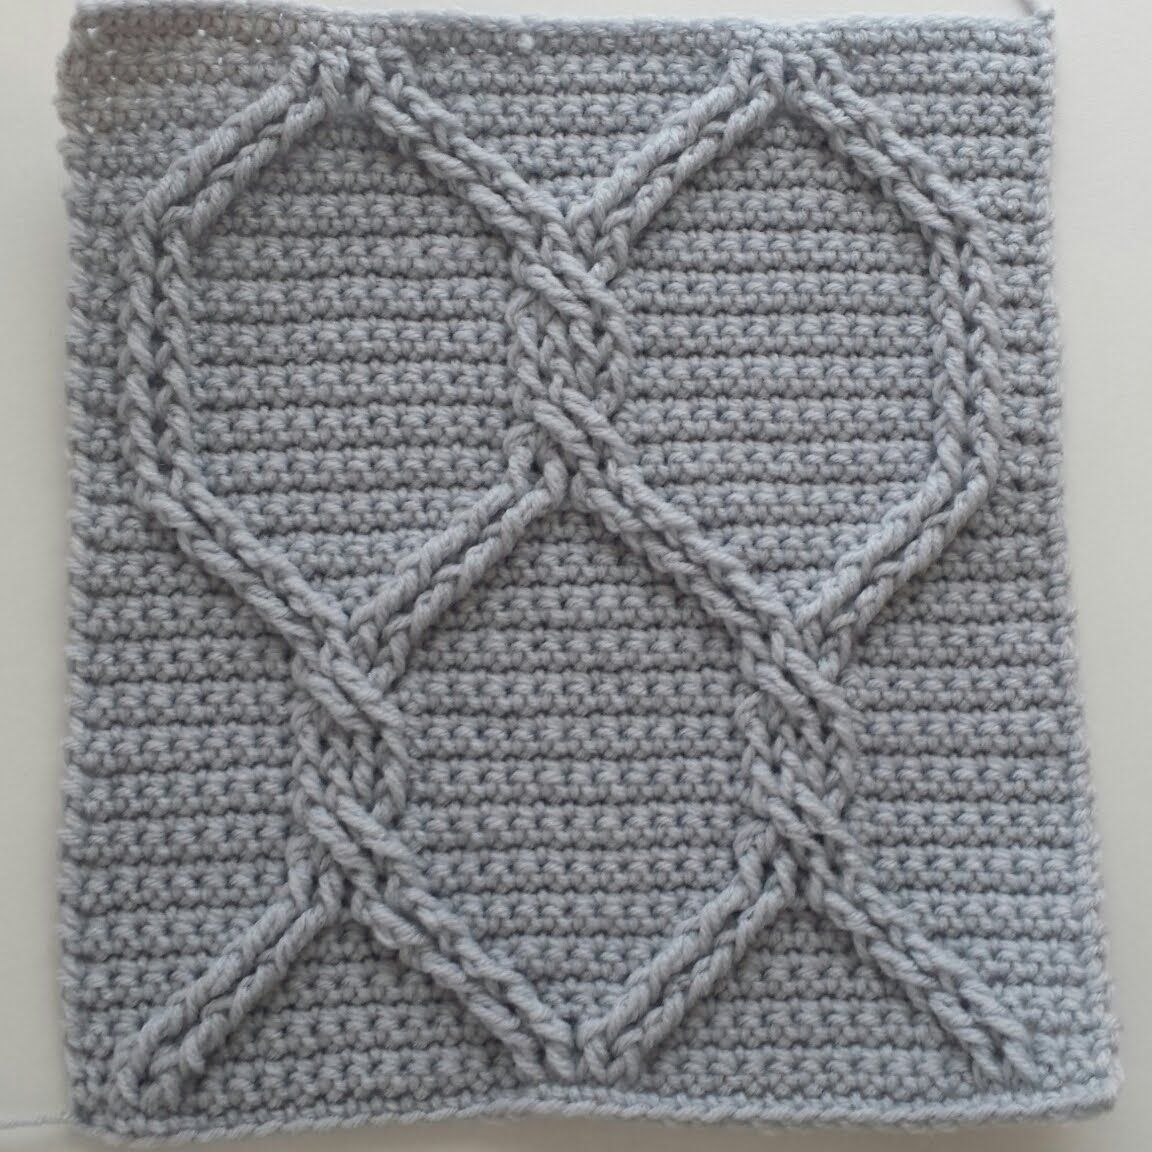 Crochet Cables Square 2: Chain Link Cables; part 2, rows 3 - 4 | 3 ...